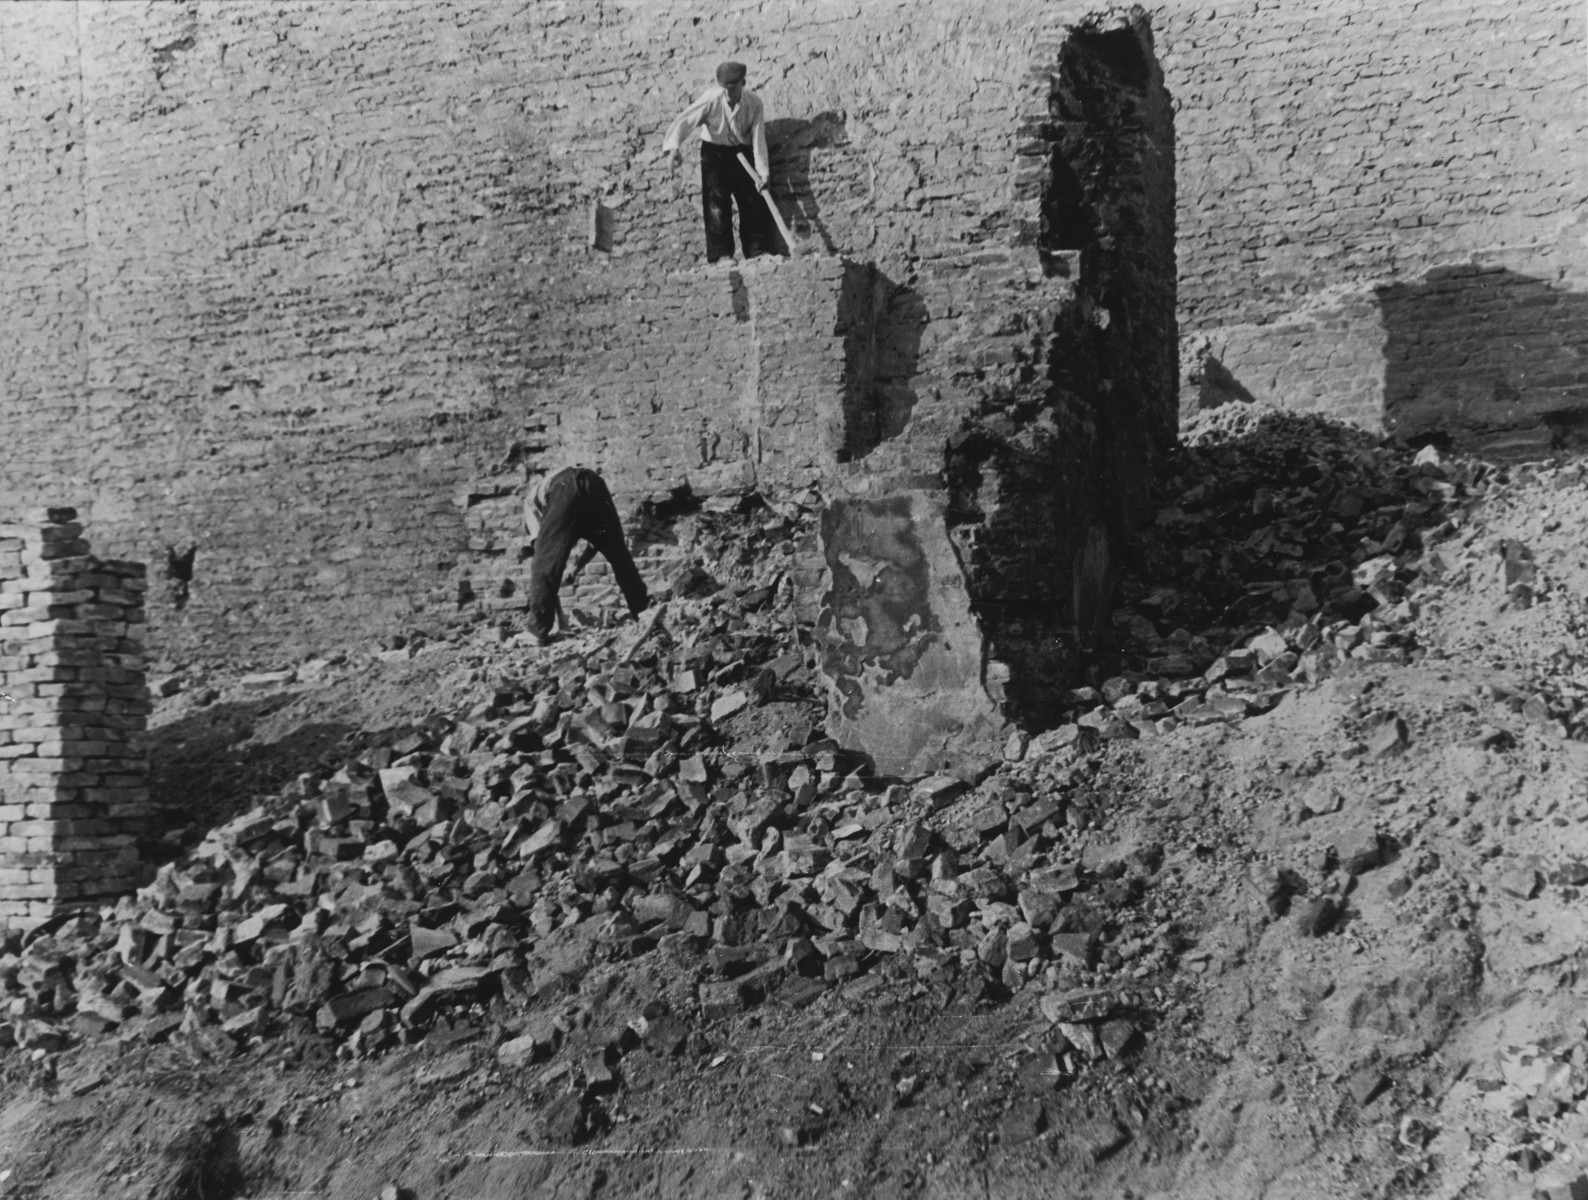 Polish workmen dismantle the wall of the Warsaw ghetto a few months after its destruction.